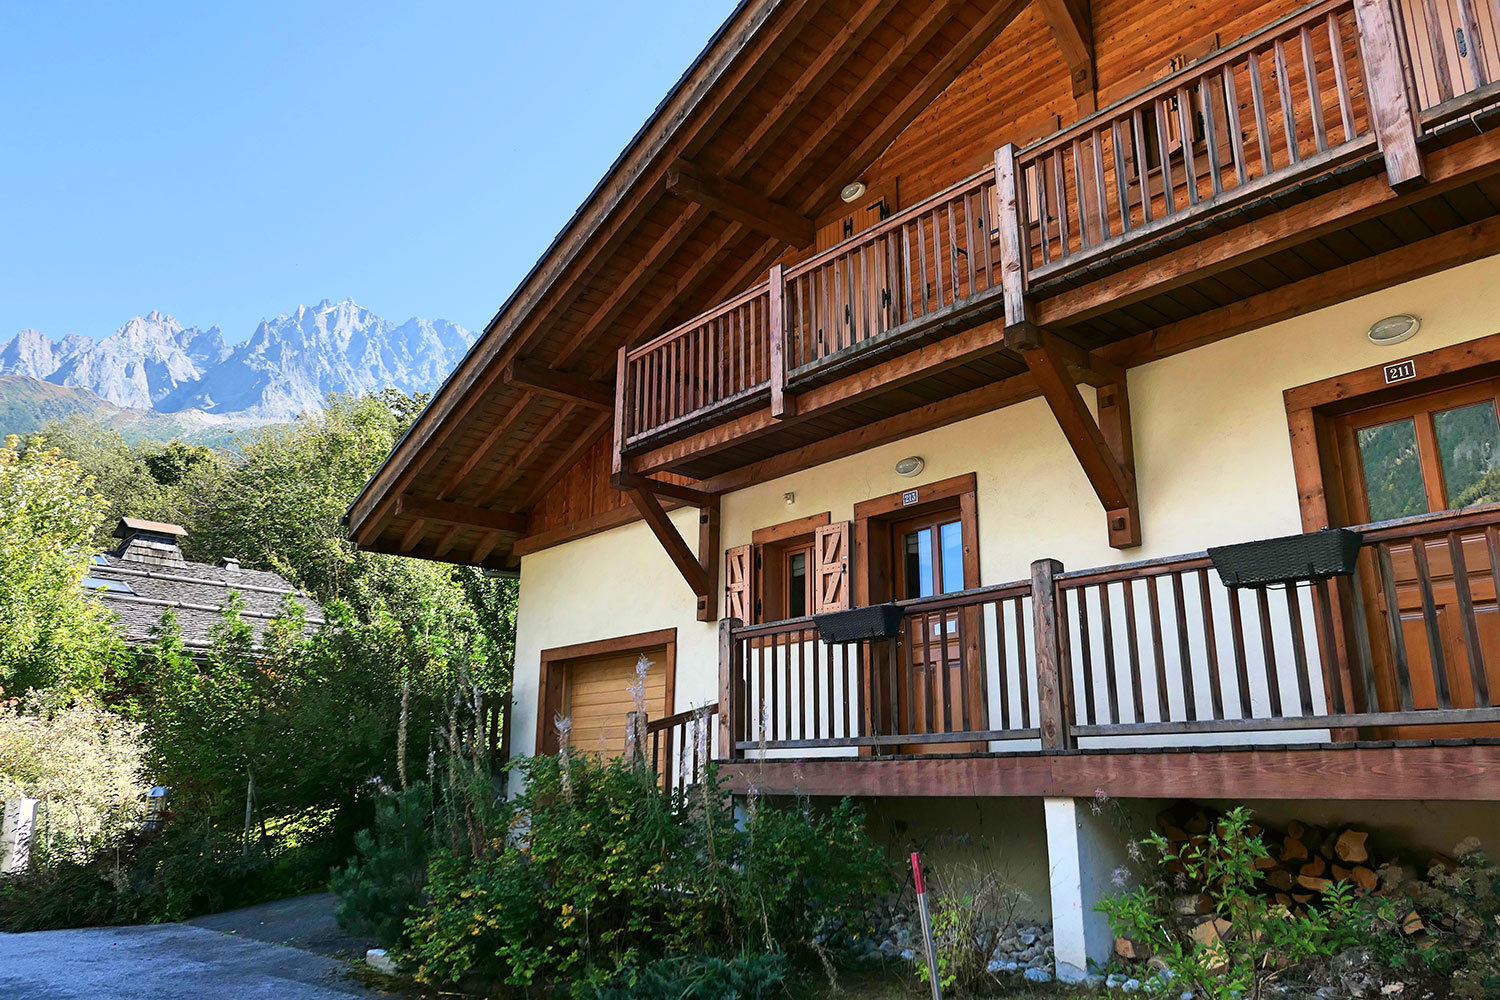 CHALET GIAN PIERE